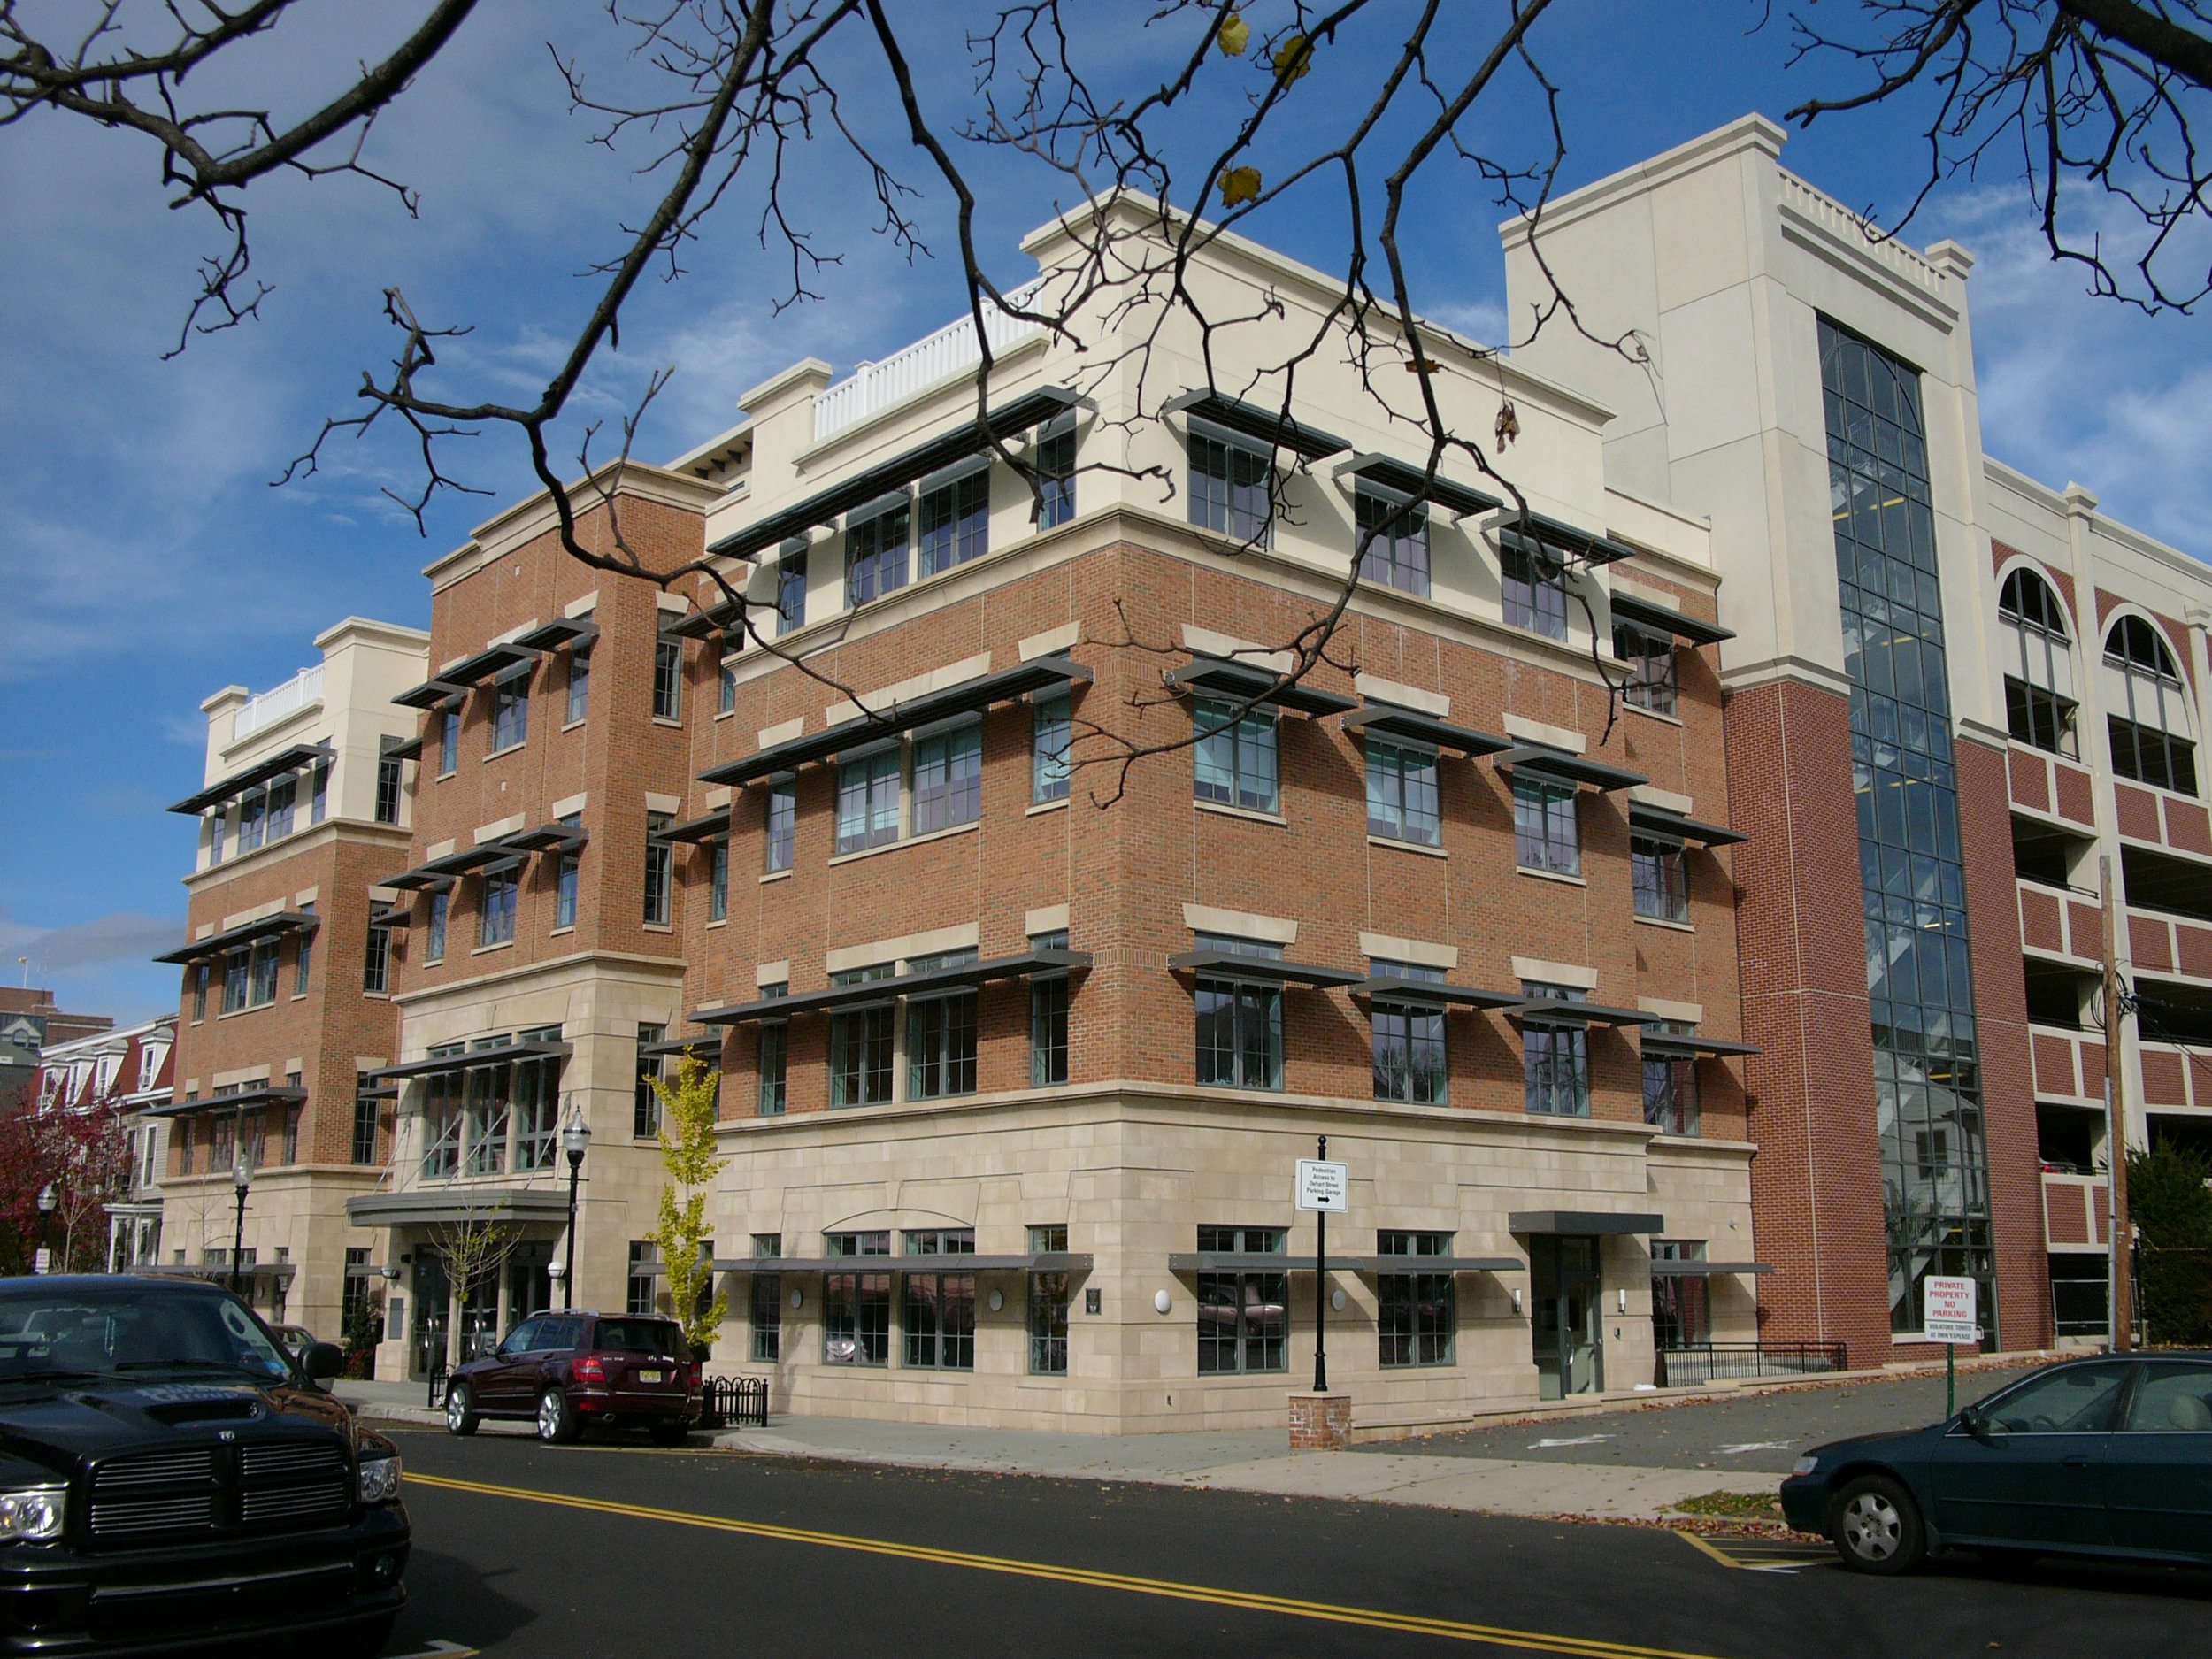 The new LEED-accredited office building for the Morristown Parking Authority.